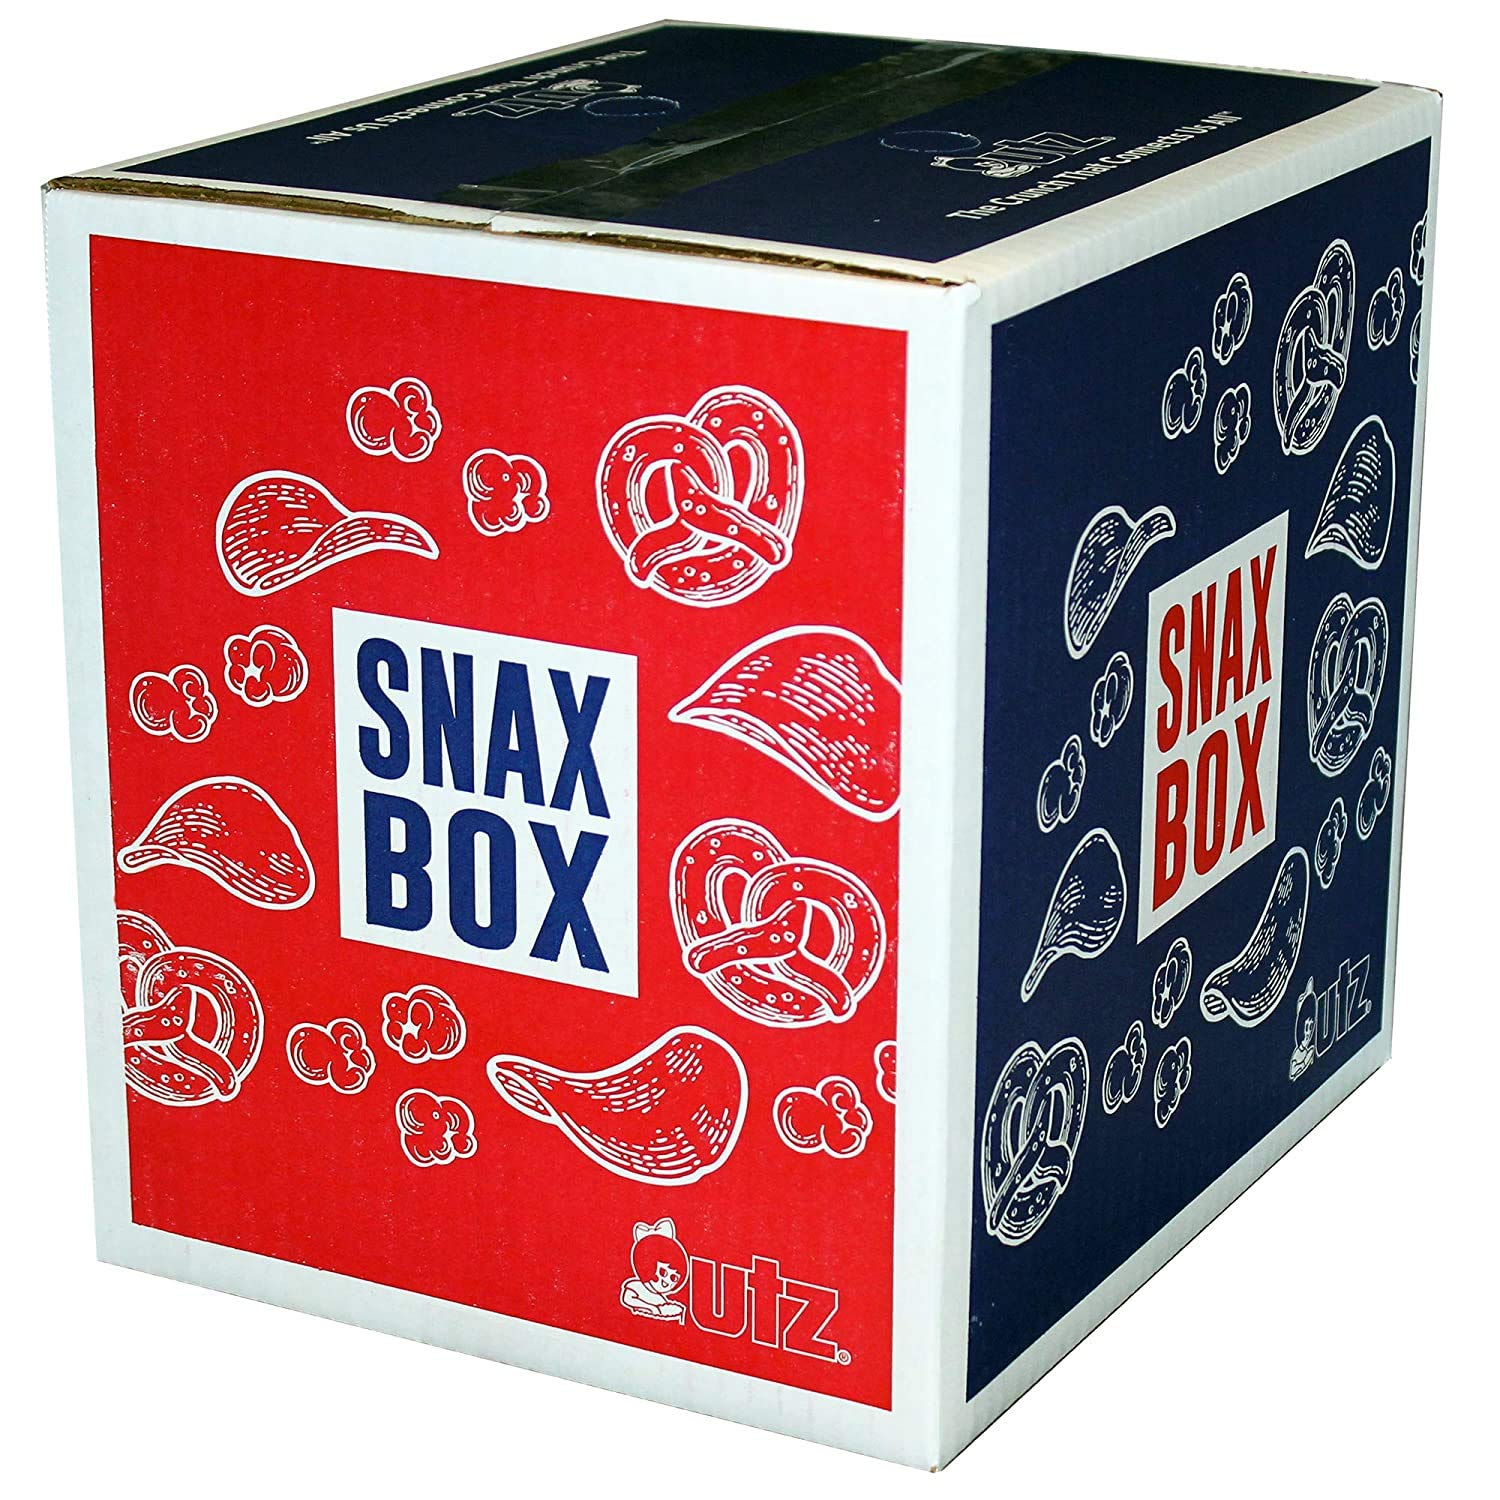 Utz Kettle Classics Potato Chips, Dark Russets – Snax Box (52 oz.) – Bulk Box of Potato Chips Made From Fresh Potatoes, Packed in a Reclosable Bag – Cholesterol Free, Trans-Fat Free, Gluten Free Snack